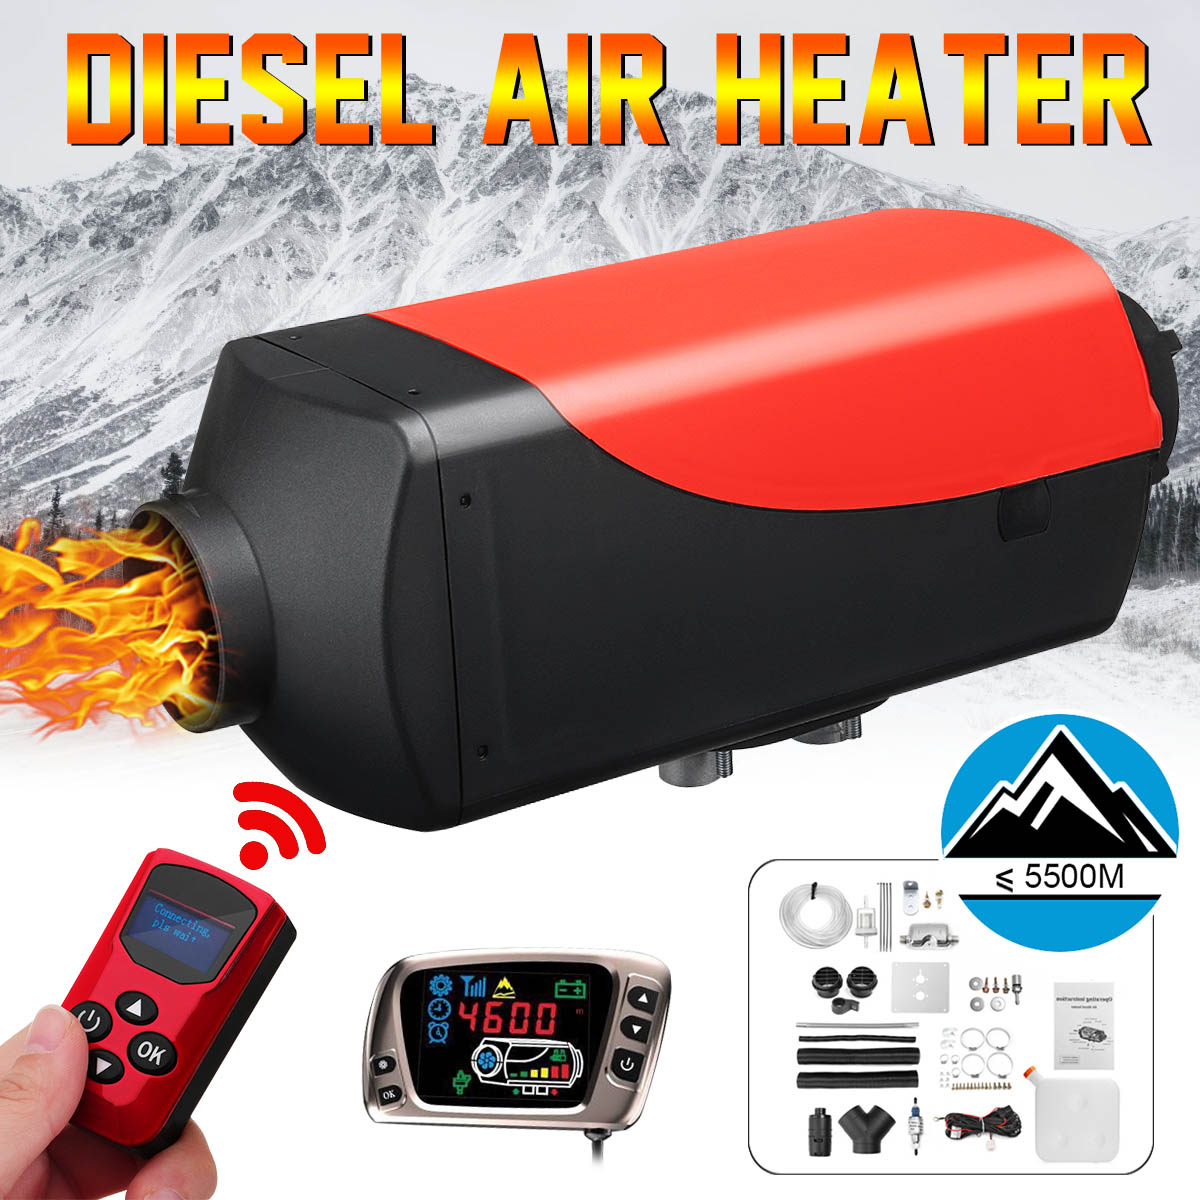 8KW 12V Air Diesels Heater LCD Monitor Remote Control Parking Heater 8000W for Trucks Boats Bus + New remote control + Silencer8KW 12V Air Diesels Heater LCD Monitor Remote Control Parking Heater 8000W for Trucks Boats Bus + New remote control + Silencer